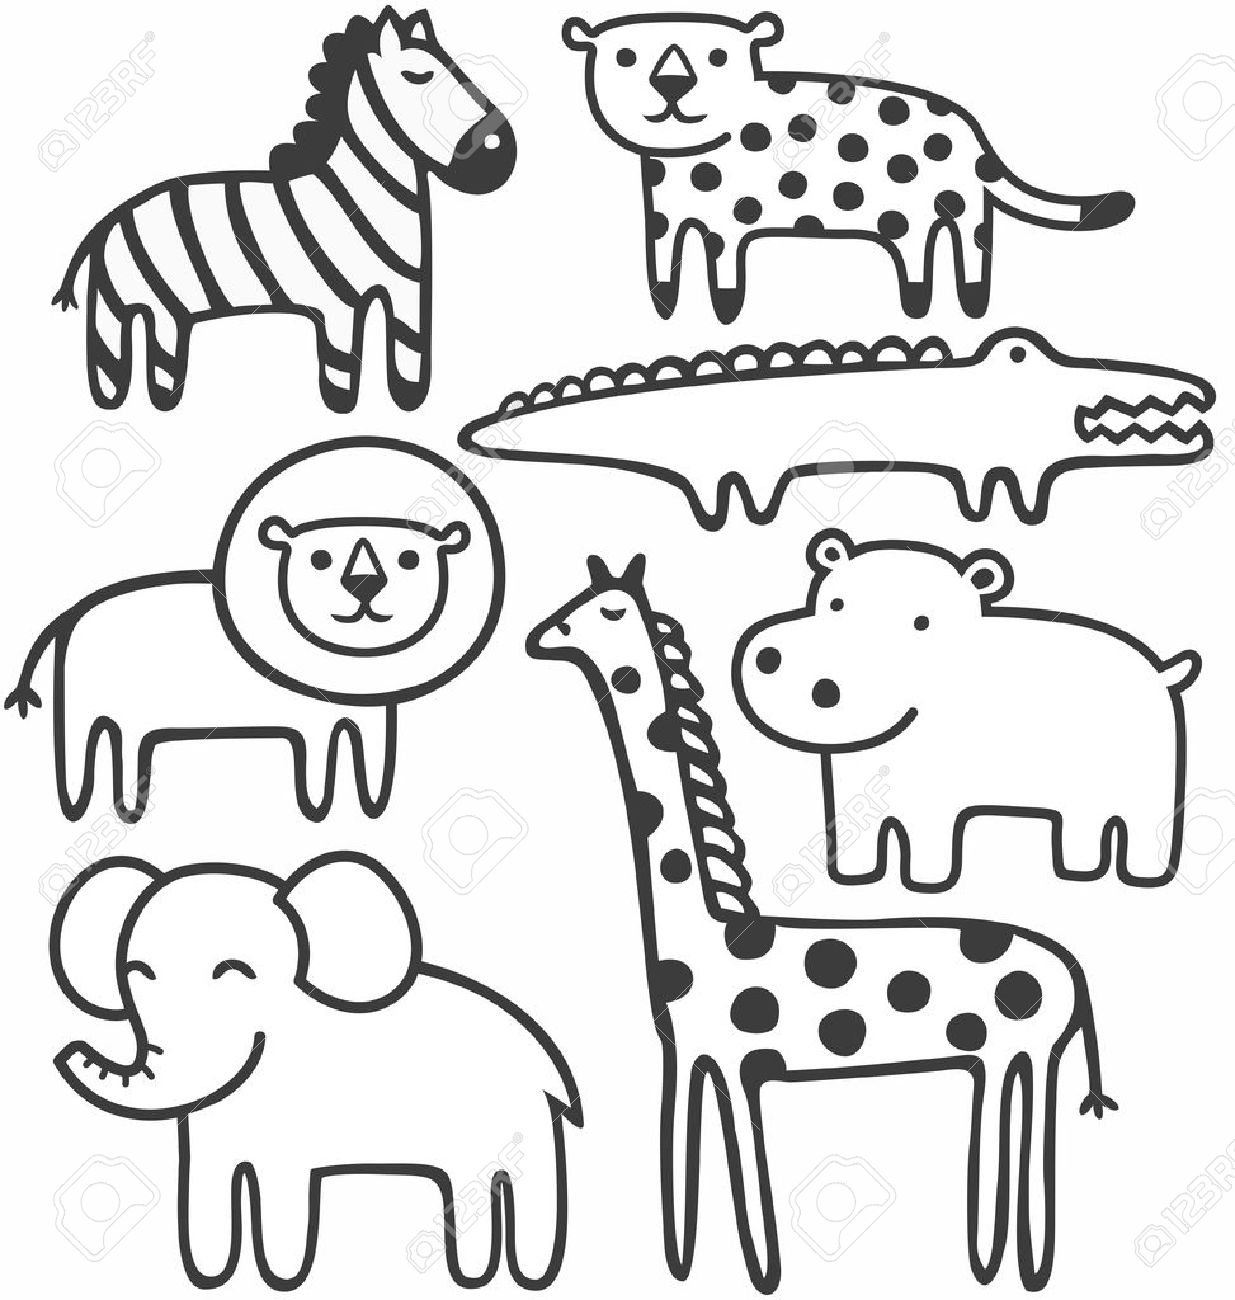 Wild animals in black and white vector illustration set.